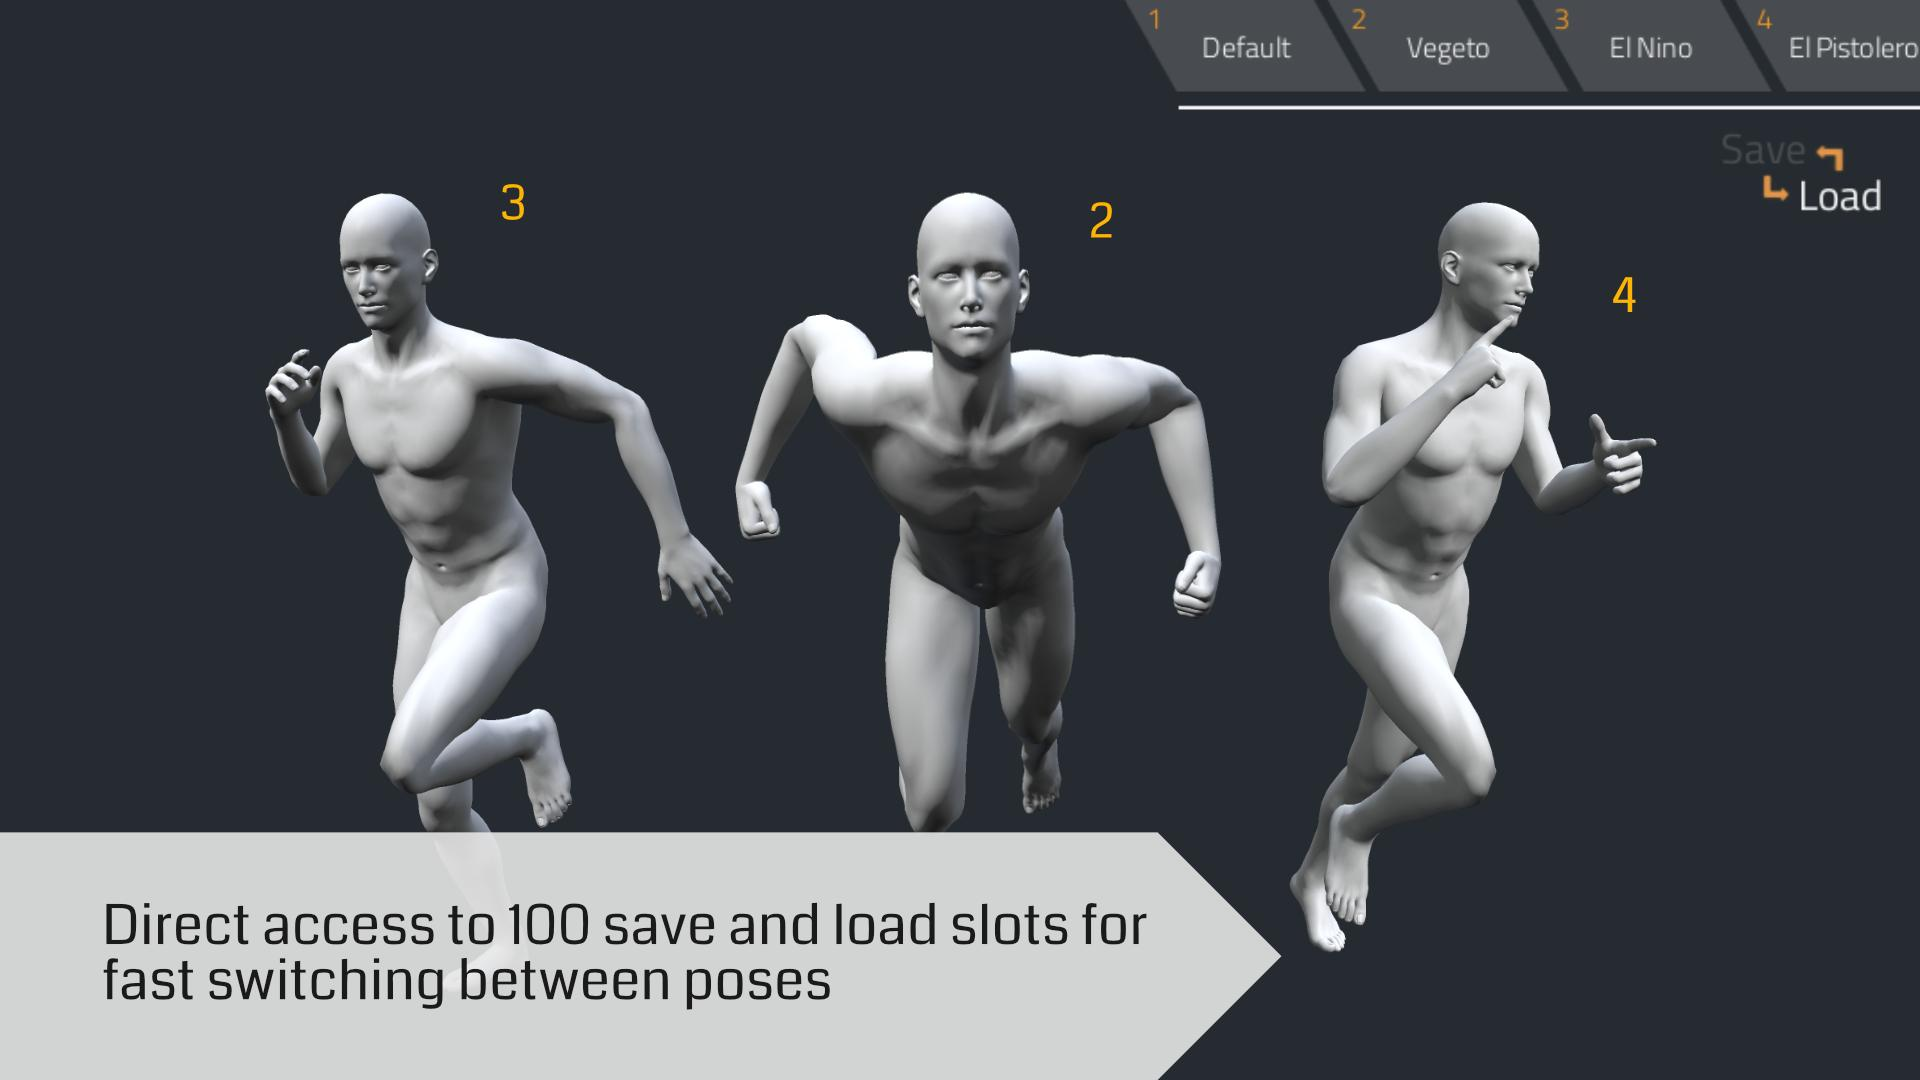 El Pose 3D for Android - APK Download